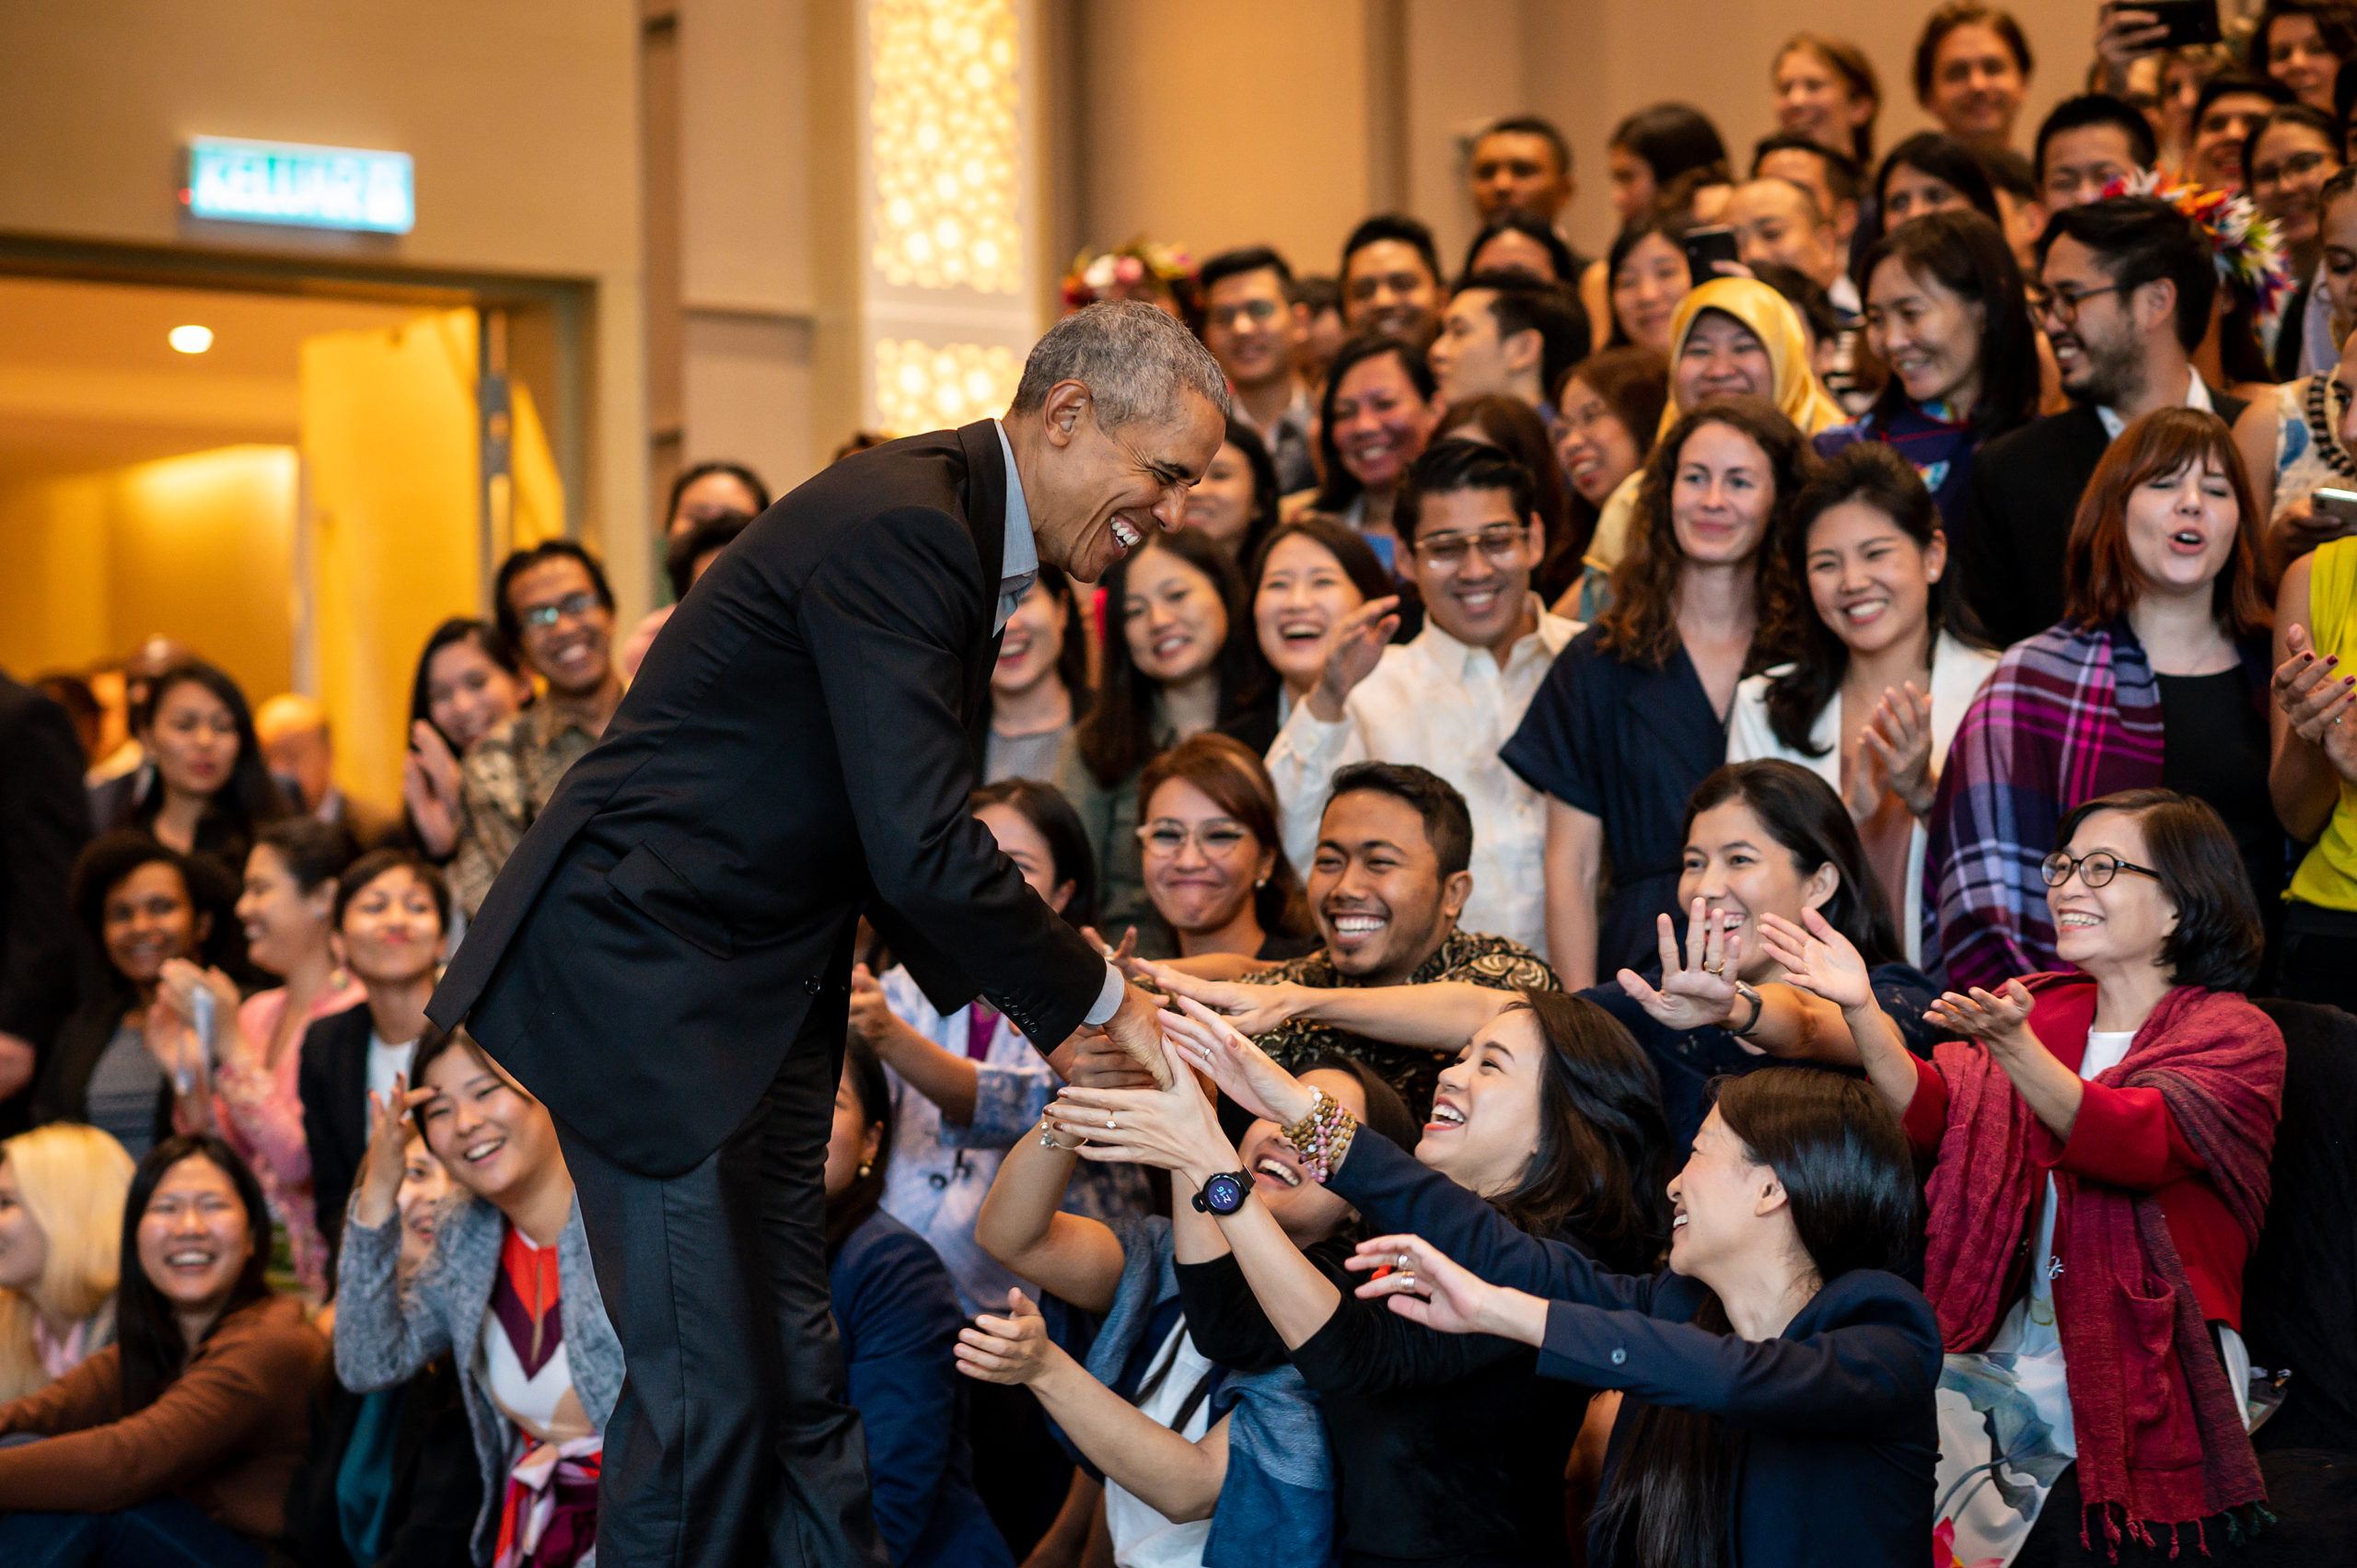 President Obama smiles as he shakes hands with an excited crowd of young people extend their hands.